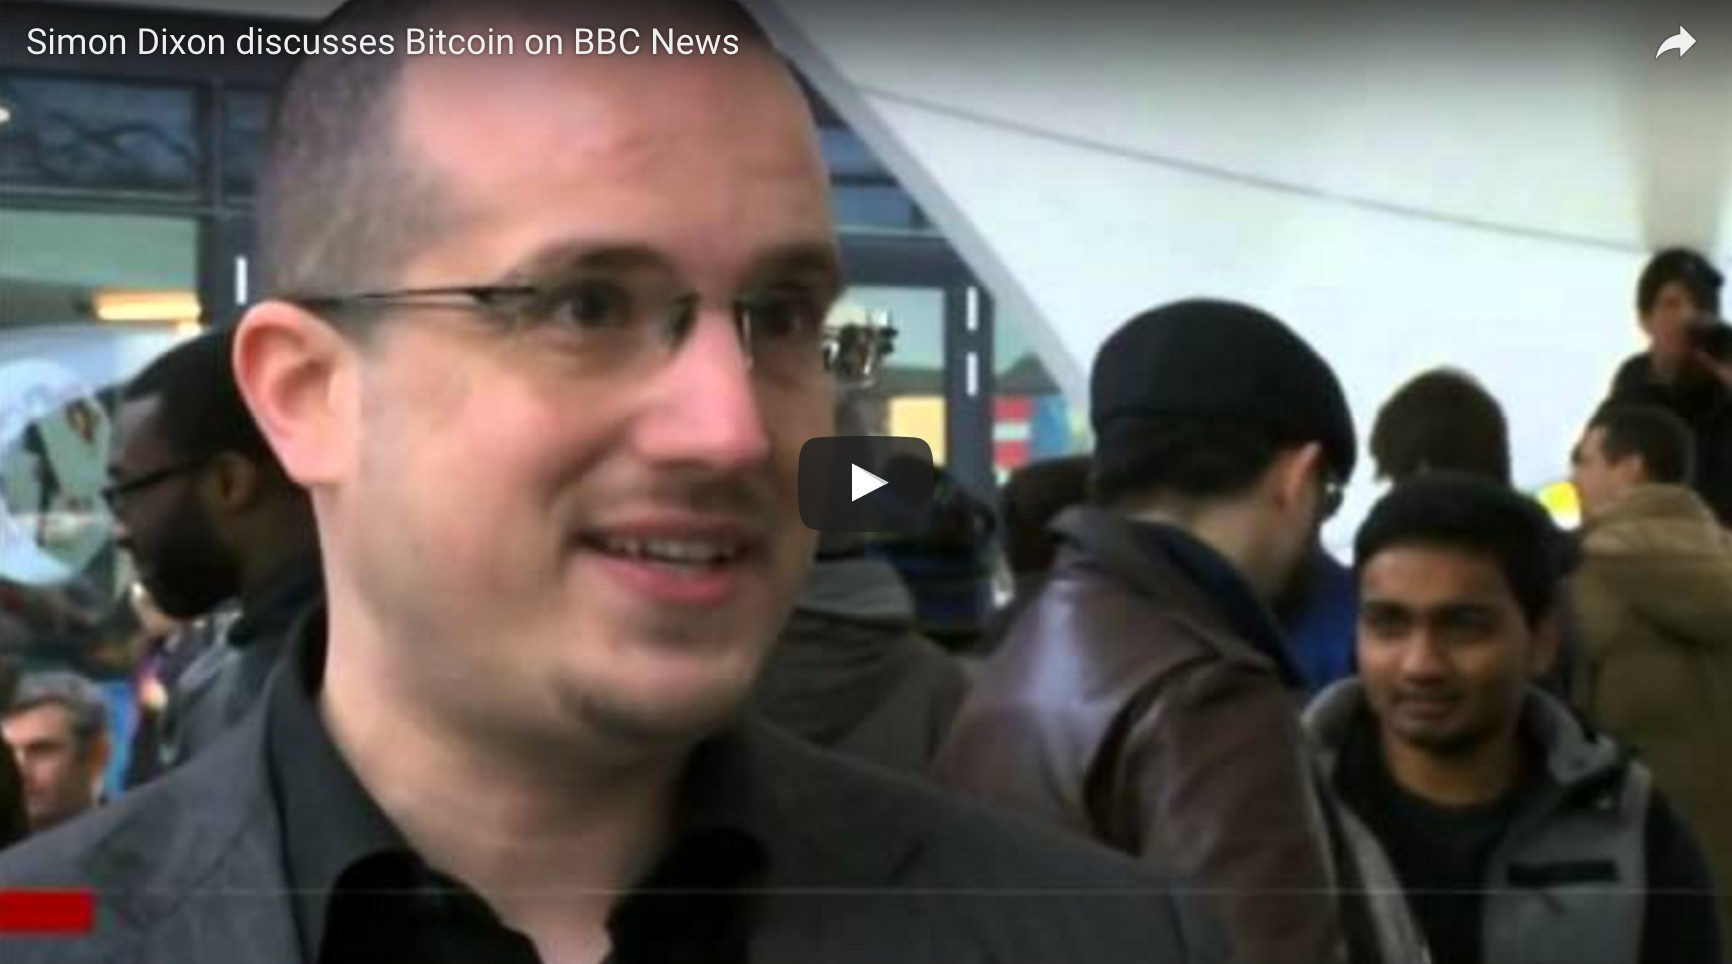 Our CEO Simon Dixon featured on BBC News